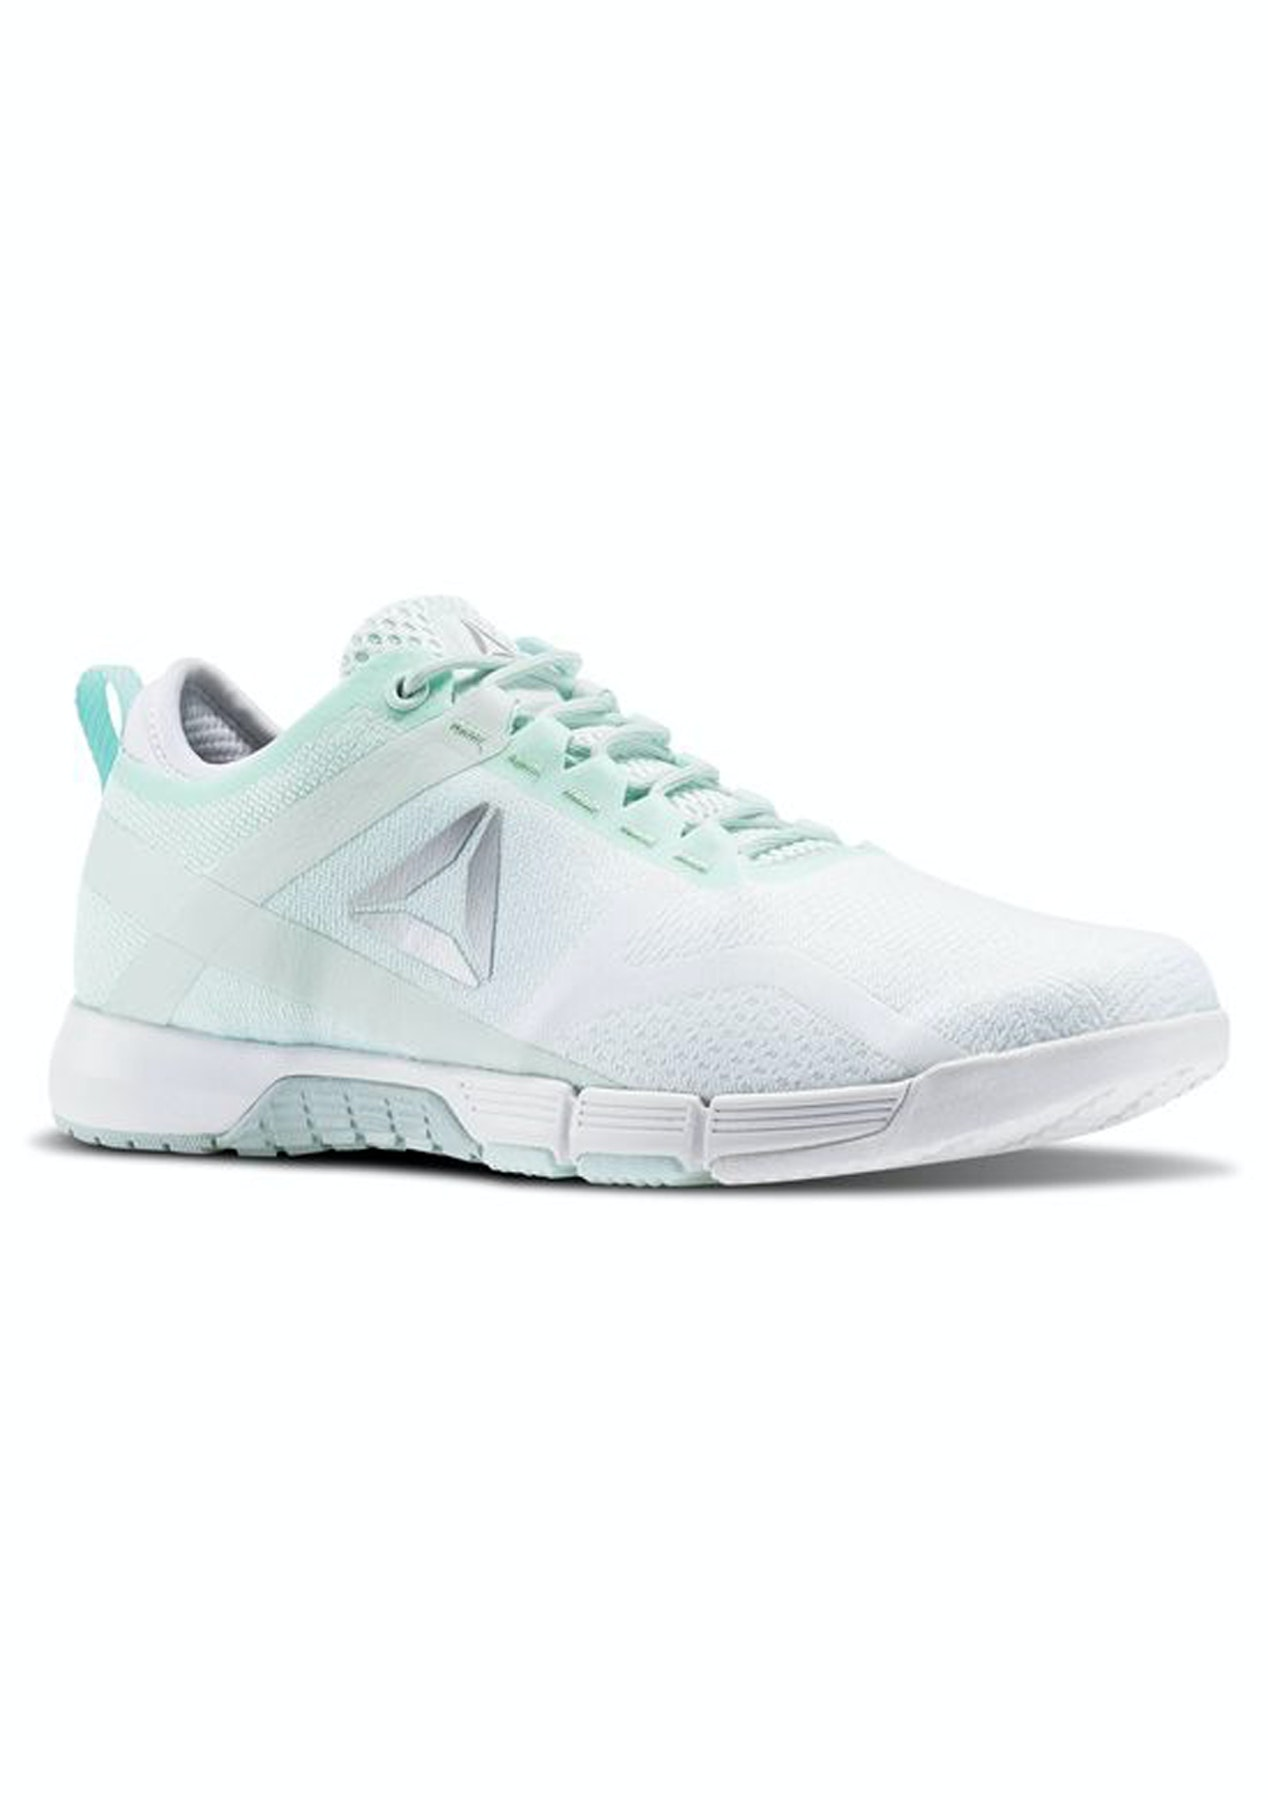 25bbd019ae16 Reebok Womens - R Crossfit Grace Tr - Mist White Seaside Grey Silver -  Reebok Classics   More Womens - Onceit